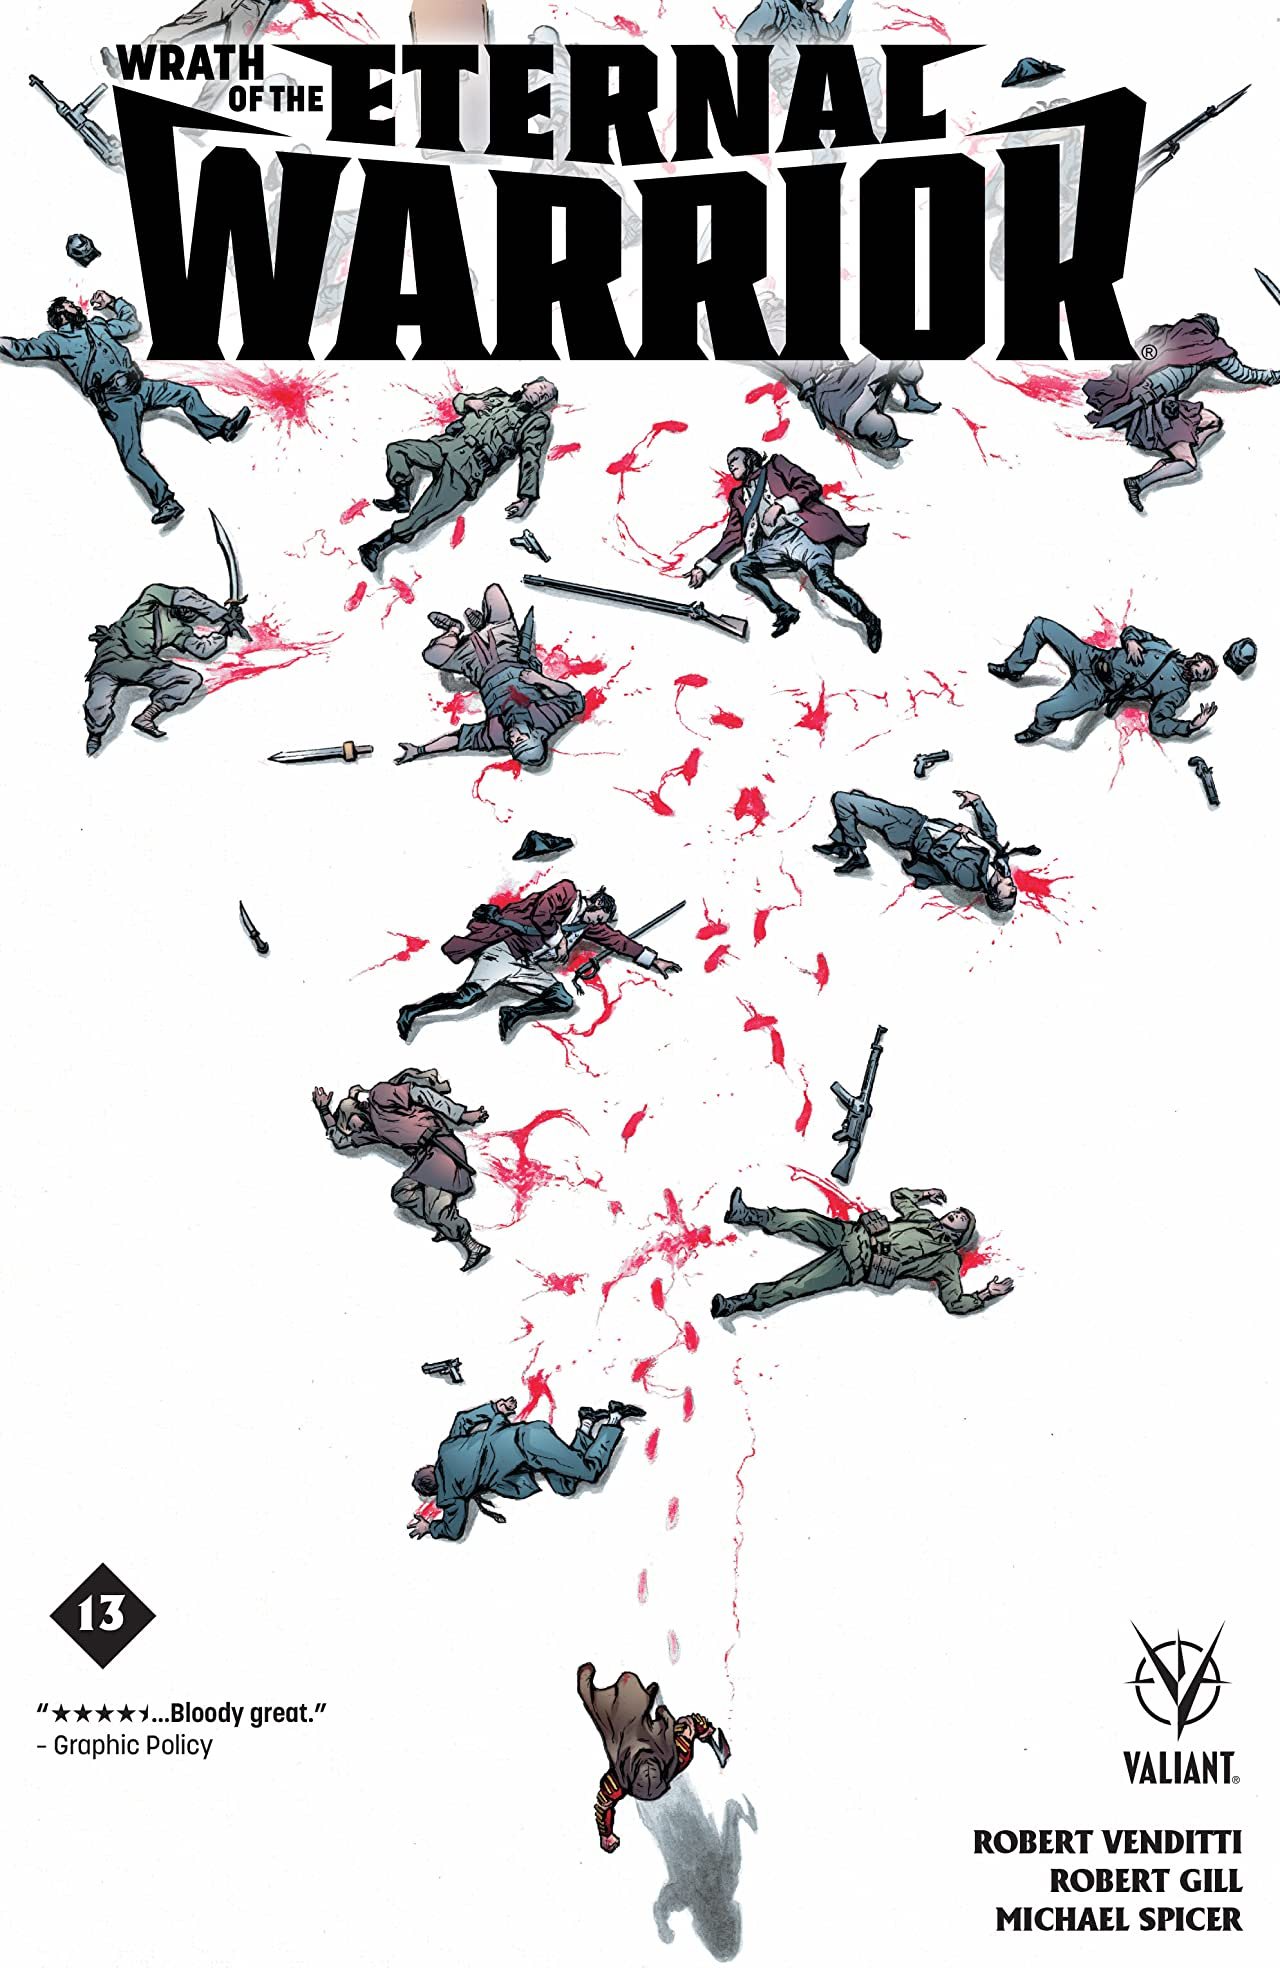 Wrath of the Eternal Warrior #13: Digital Exclusives Edition